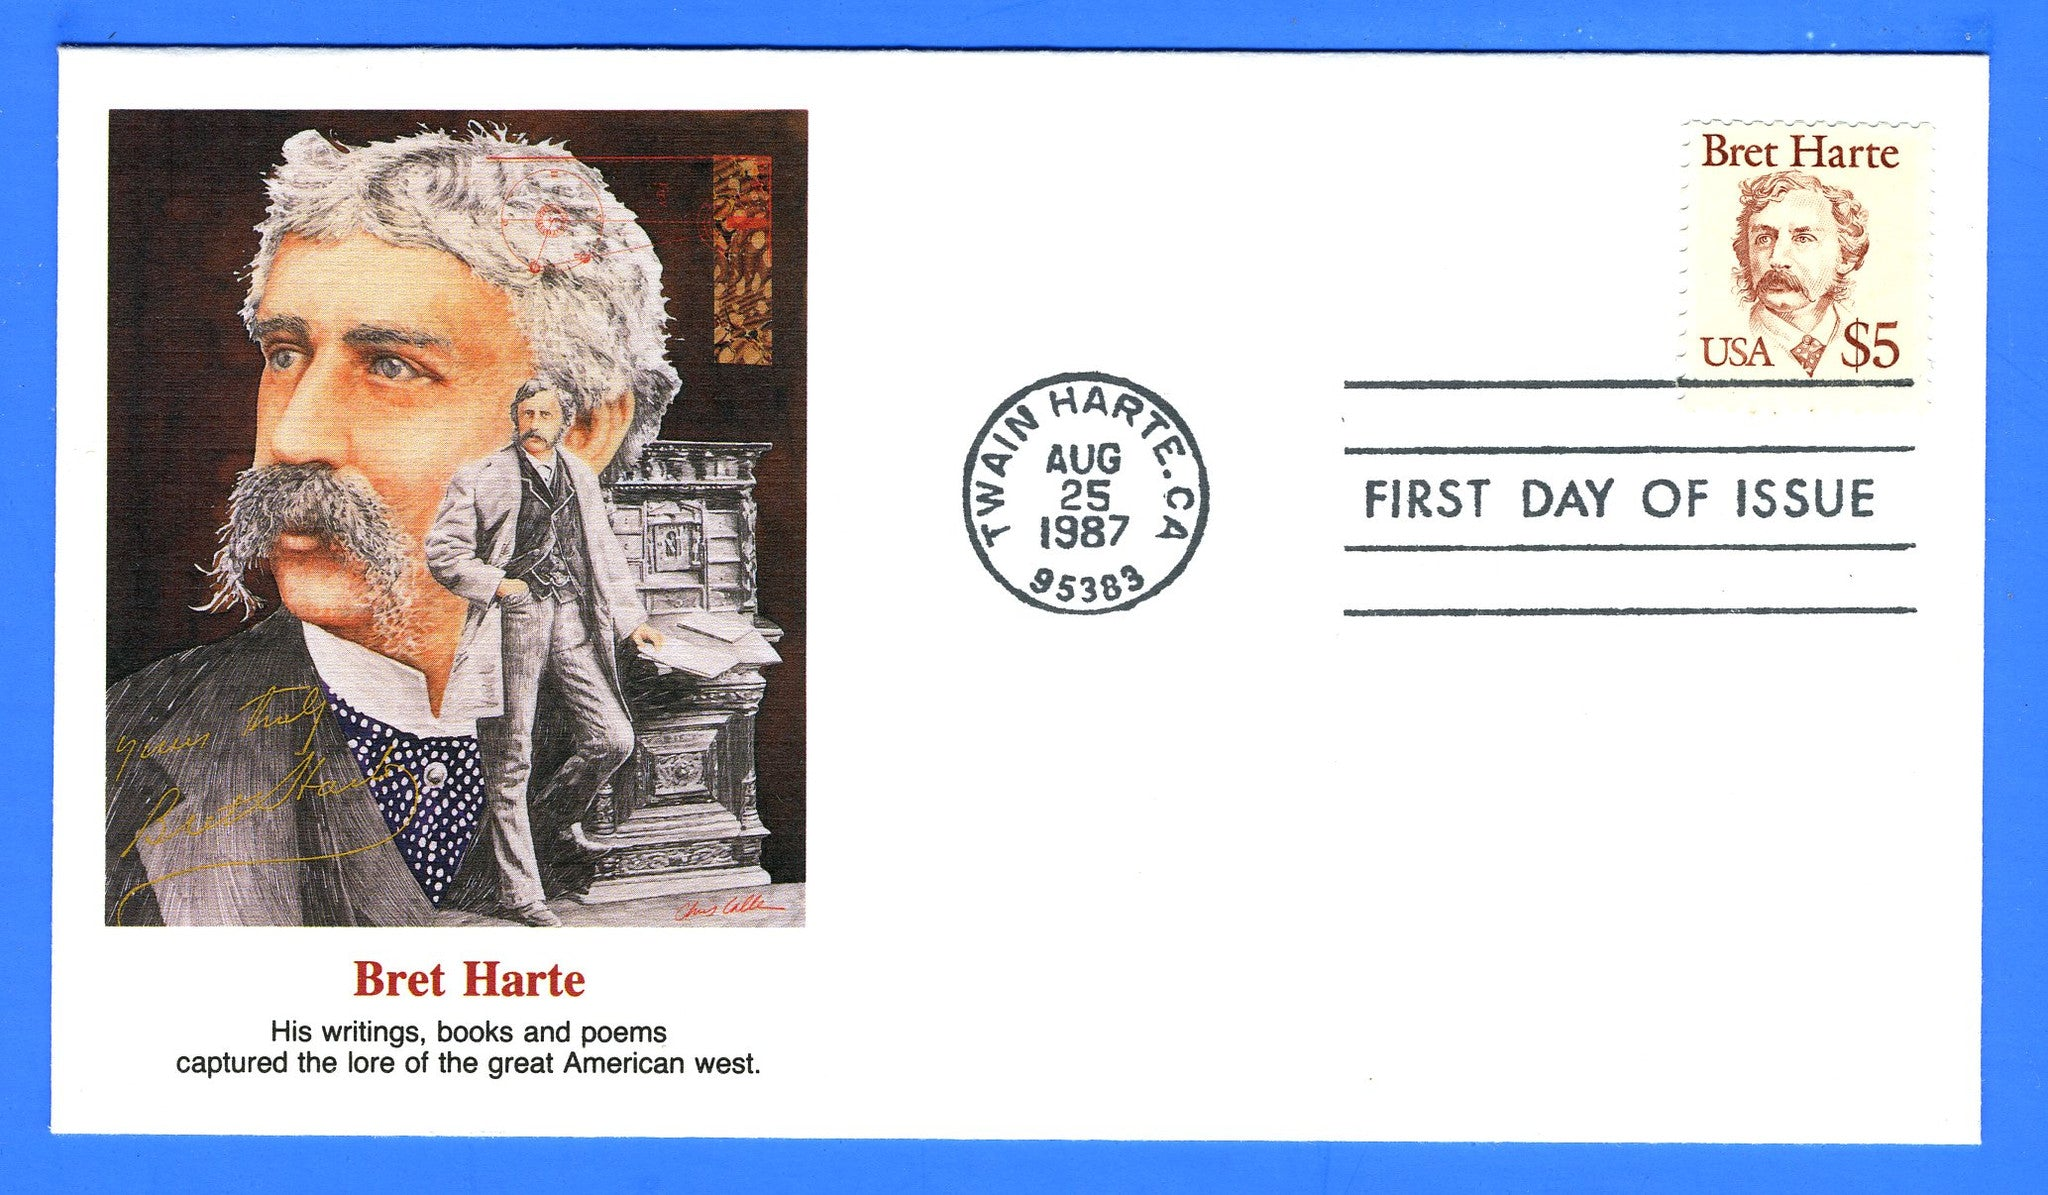 Scott 2196 $5 Bret Harte First Day Cover by Fleetwood